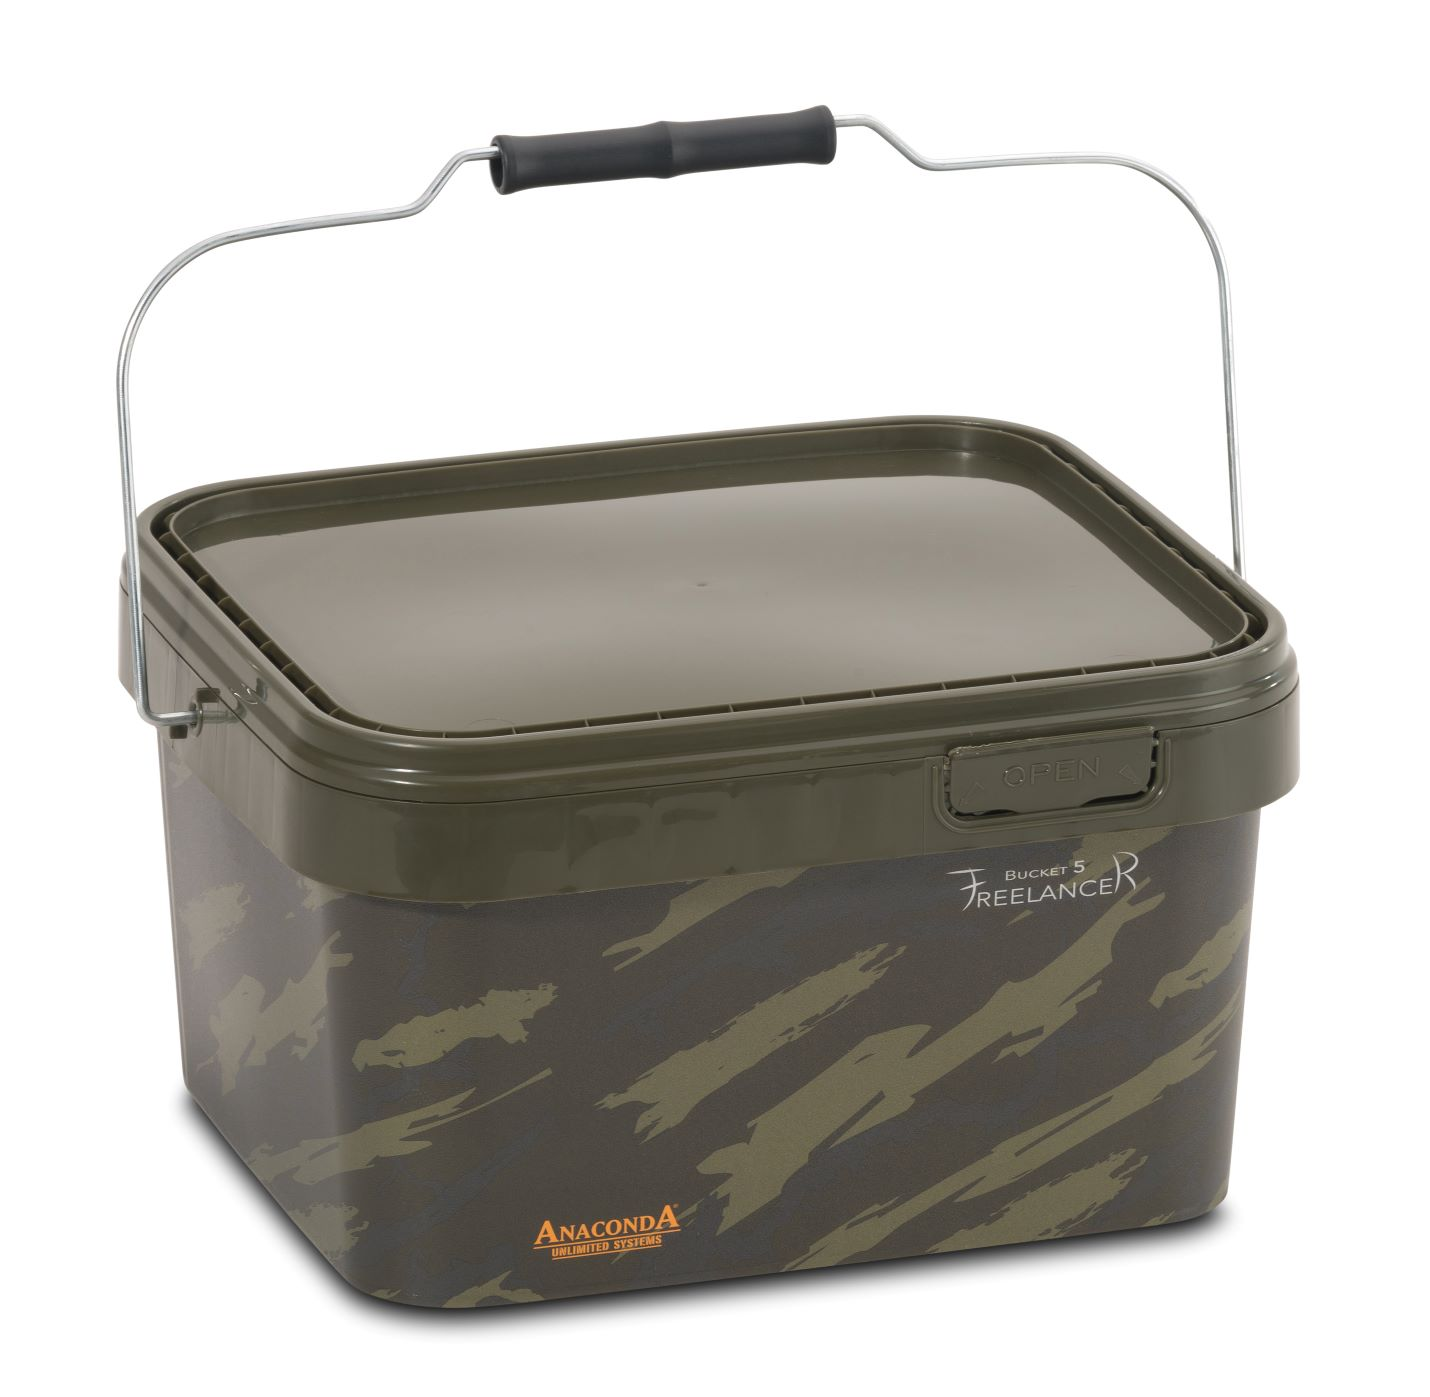 Anaconda kbelík Freelancer Bucket, 5 litrů